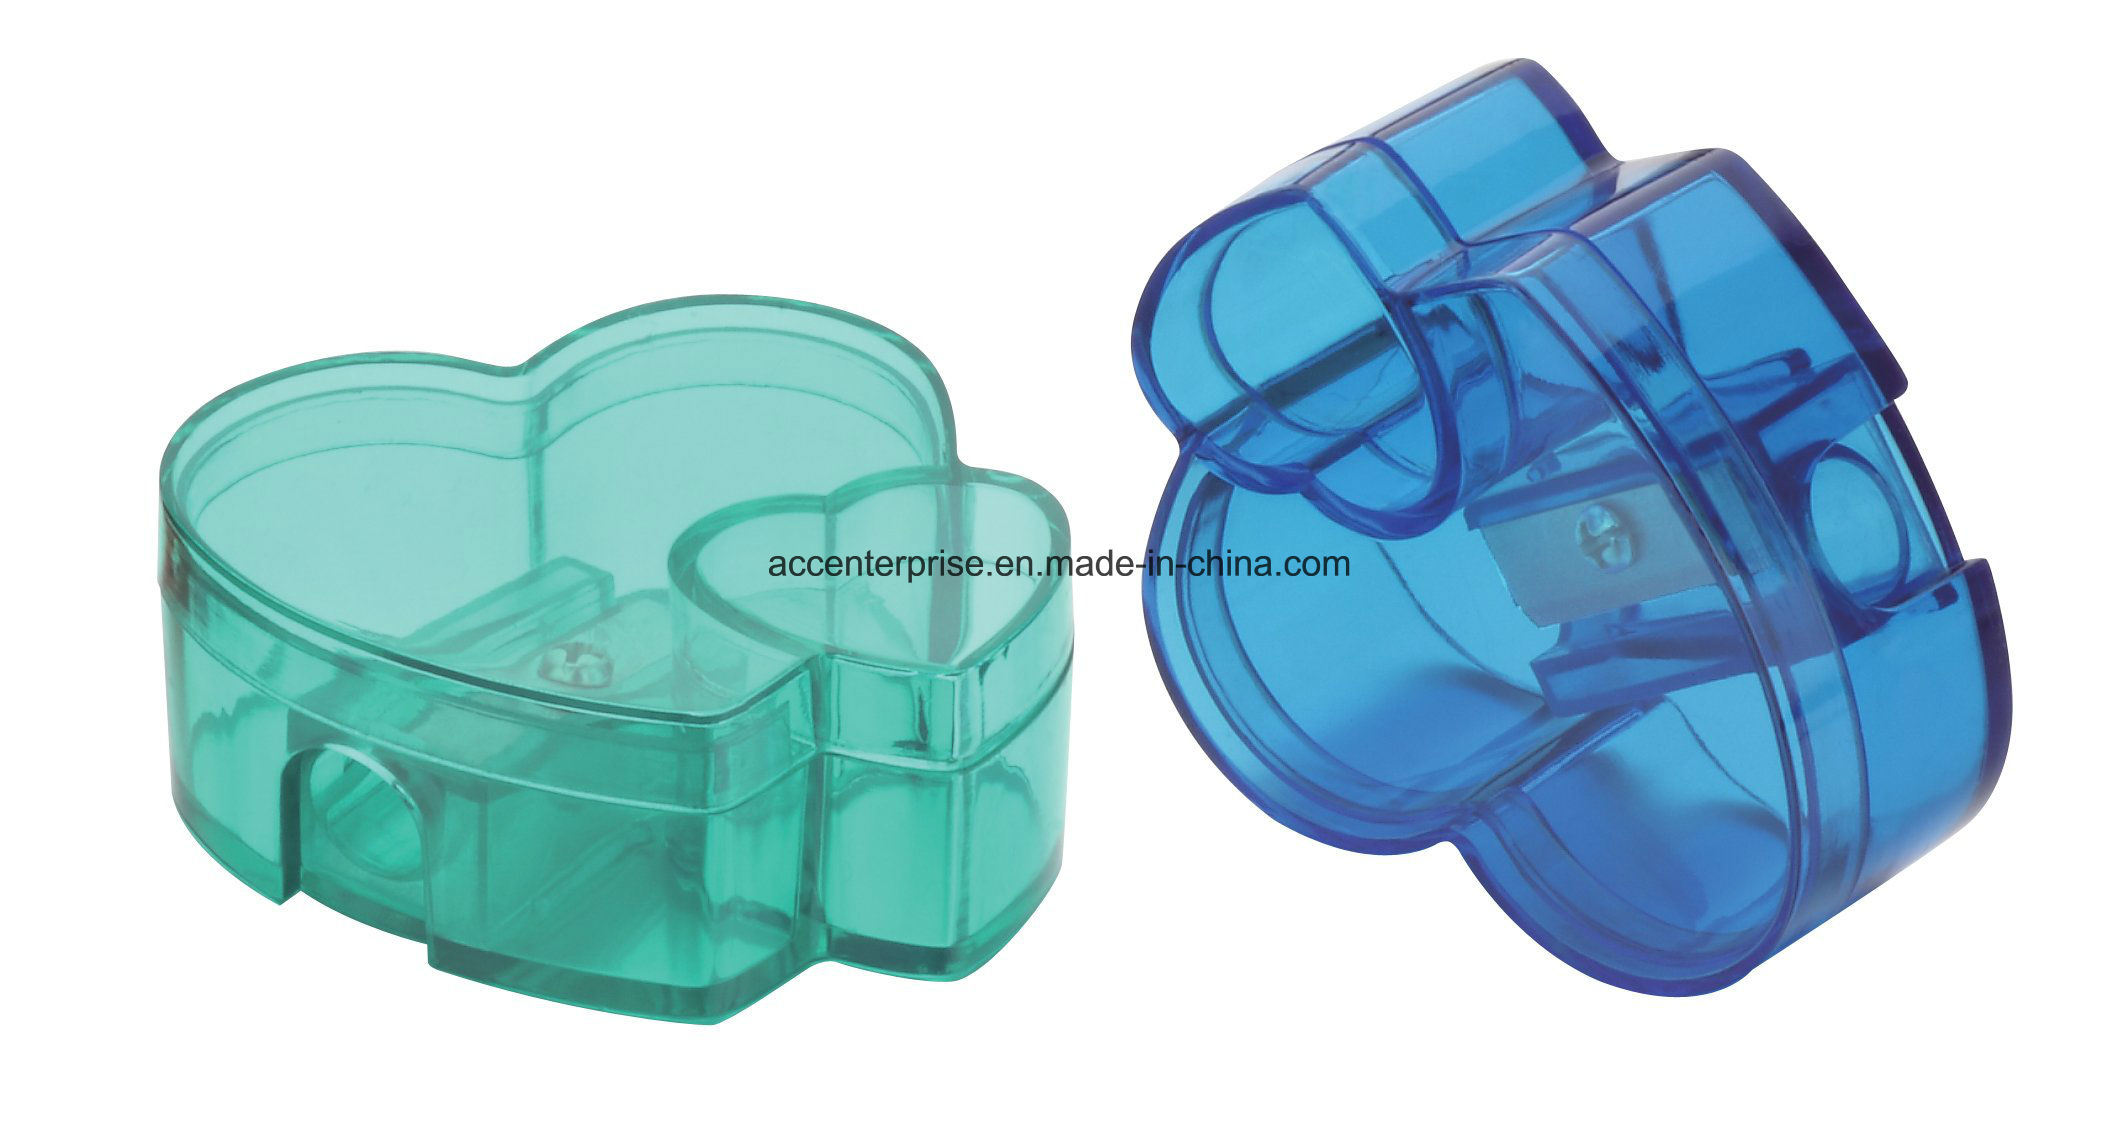 All Shaped Plastic Pencil Sharpener